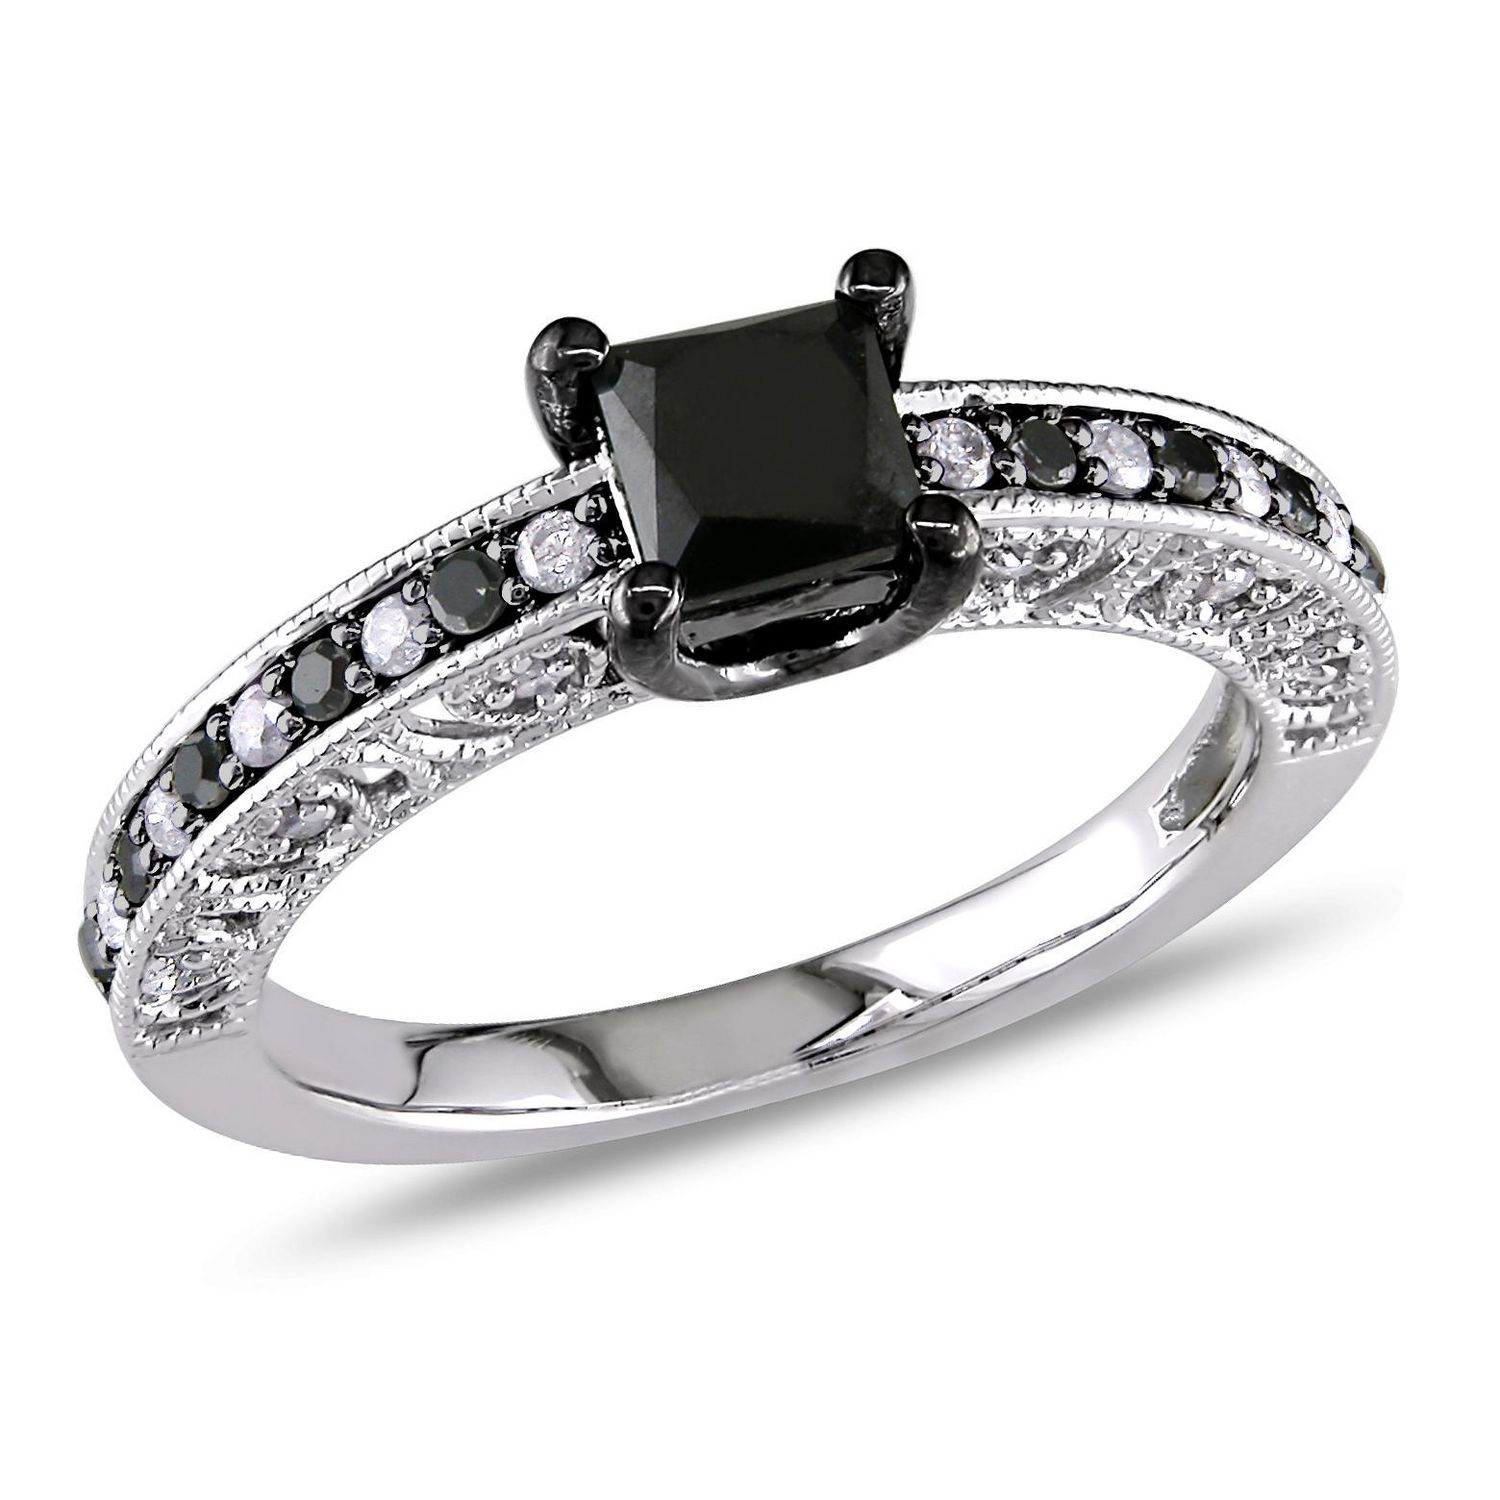 b and black diamond white bridal del set ct silver sofia sterling products rings sapphire progressive engagement main tw